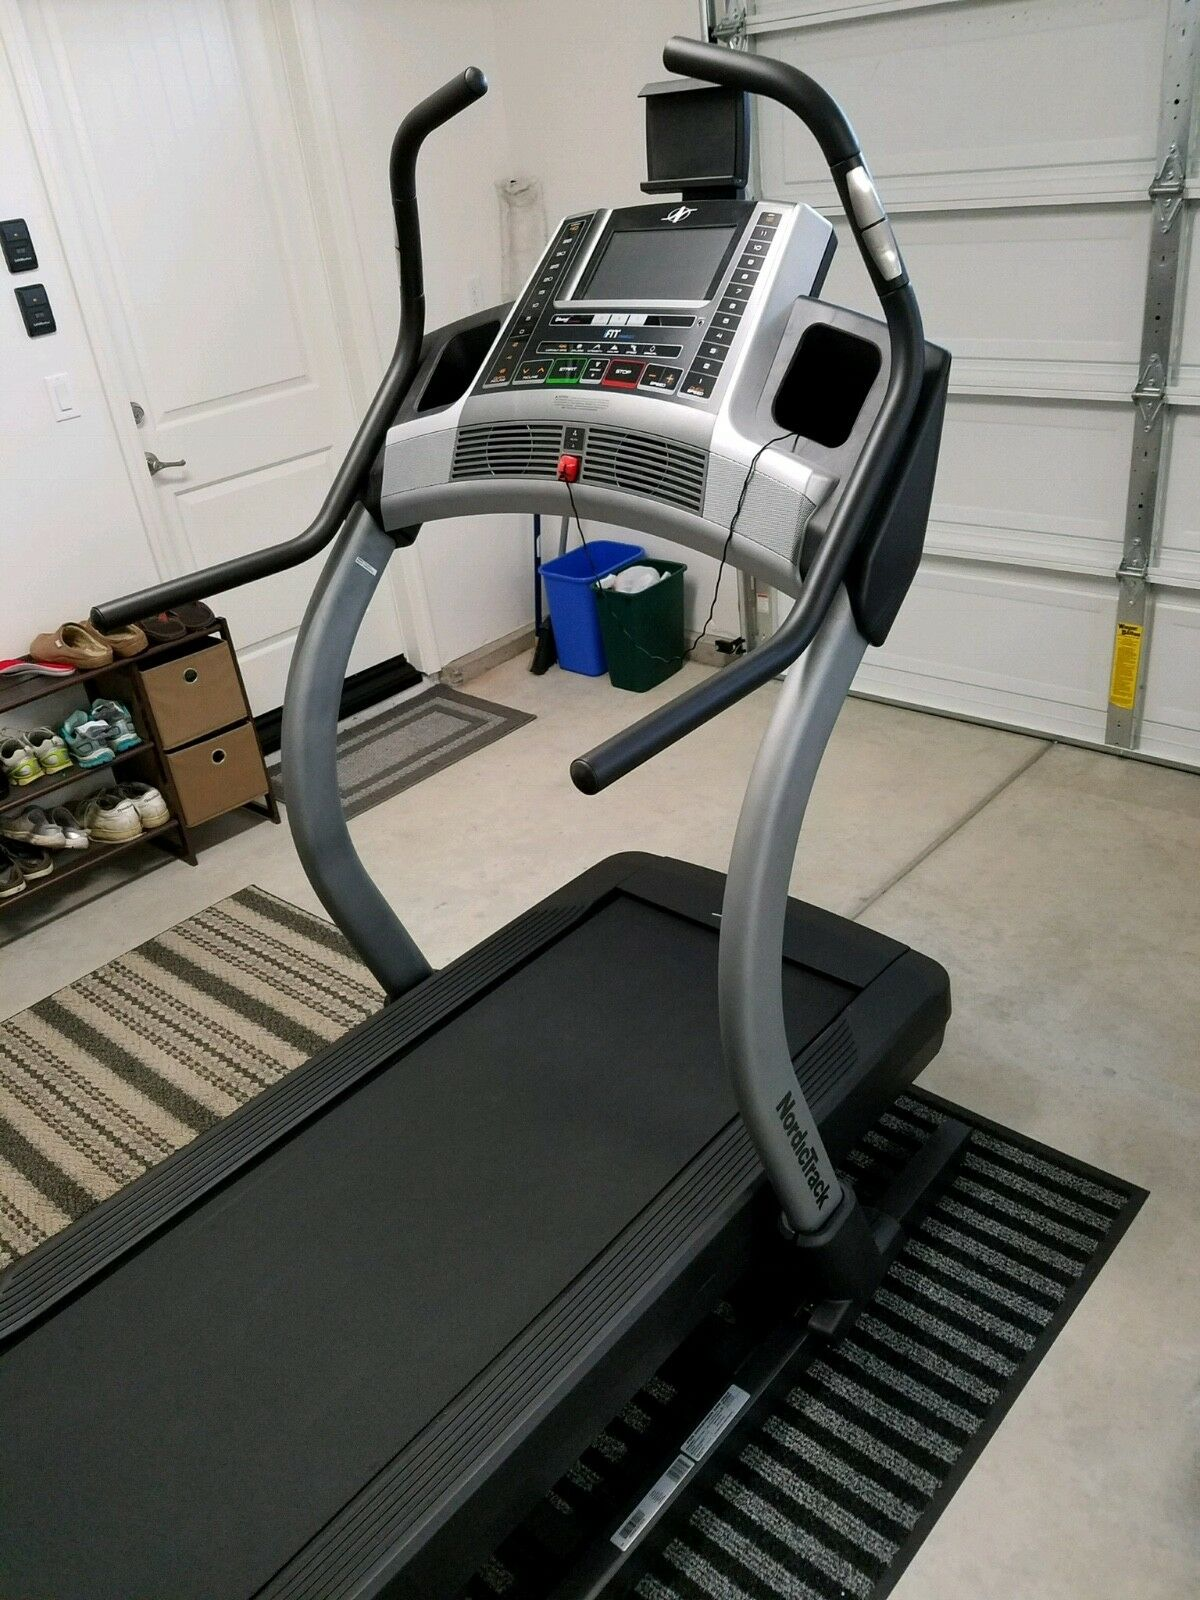 New wiring diagram nordictrack treadmill skywalker 60a ubec wiring wiring diagram nordictrack x11i incline 02 grand am fuel pump wiring nordictrack x11i incline trainer treadmill wiring diagram nordictrack x11i inclinehtml asfbconference2016 Images